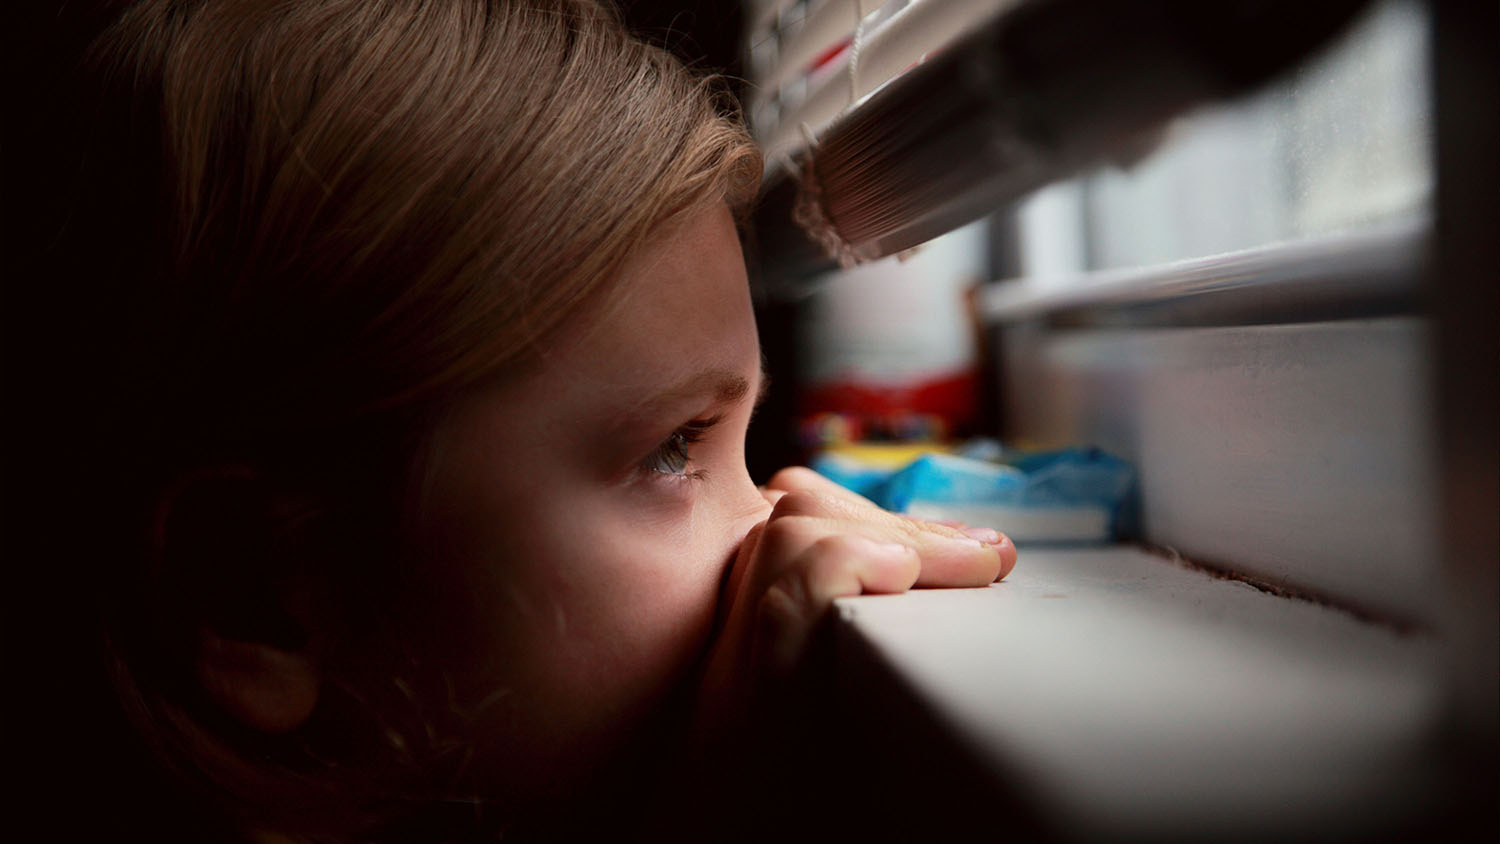 A young child peering through the bottom of a closed window